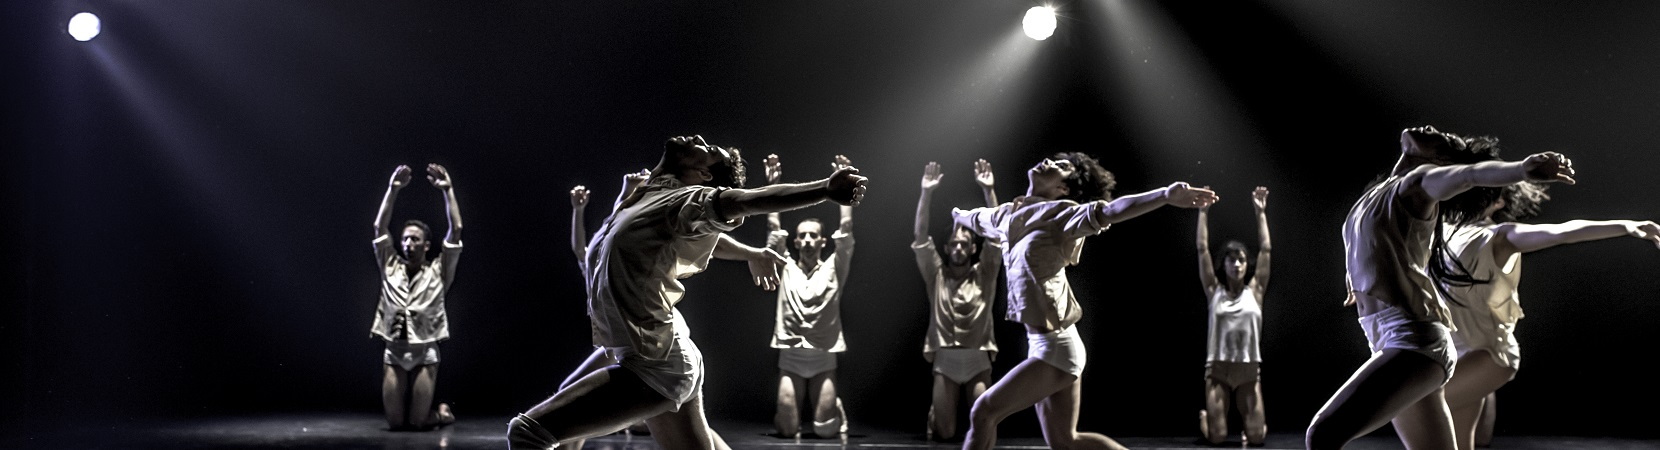 Horses-in-the-Sky-by-Rami-Beer-Kibbutz-Contemporray-Dance-Company-The-Best-Dance-Company-Homepage-Slider-007